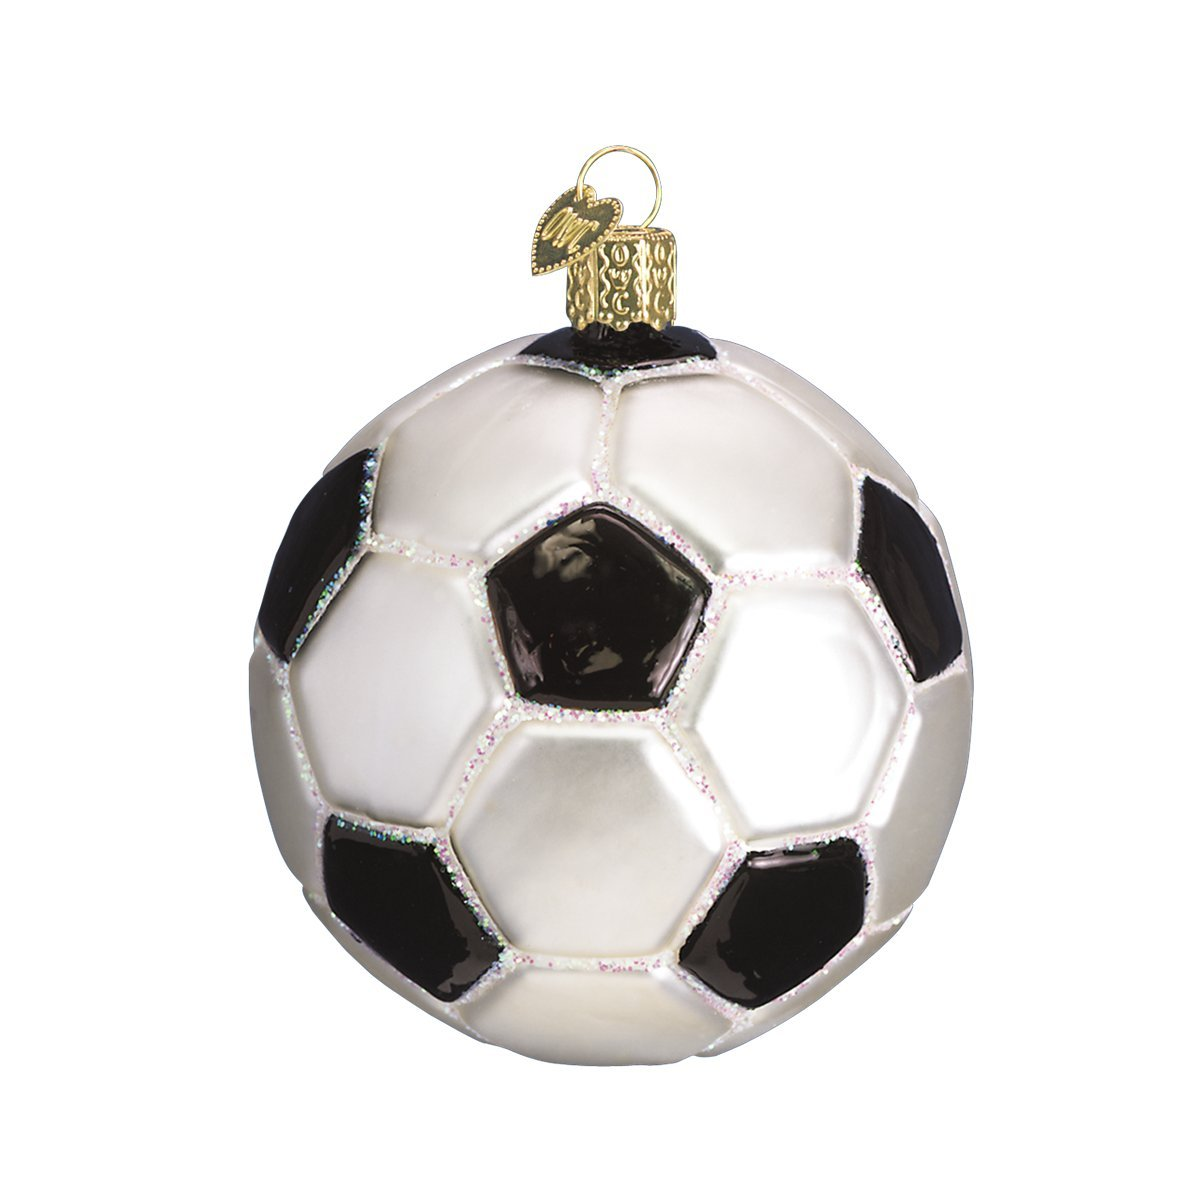 Amazon.com: Old World Christmas Soccer Ball Glass Blown Ornament ...